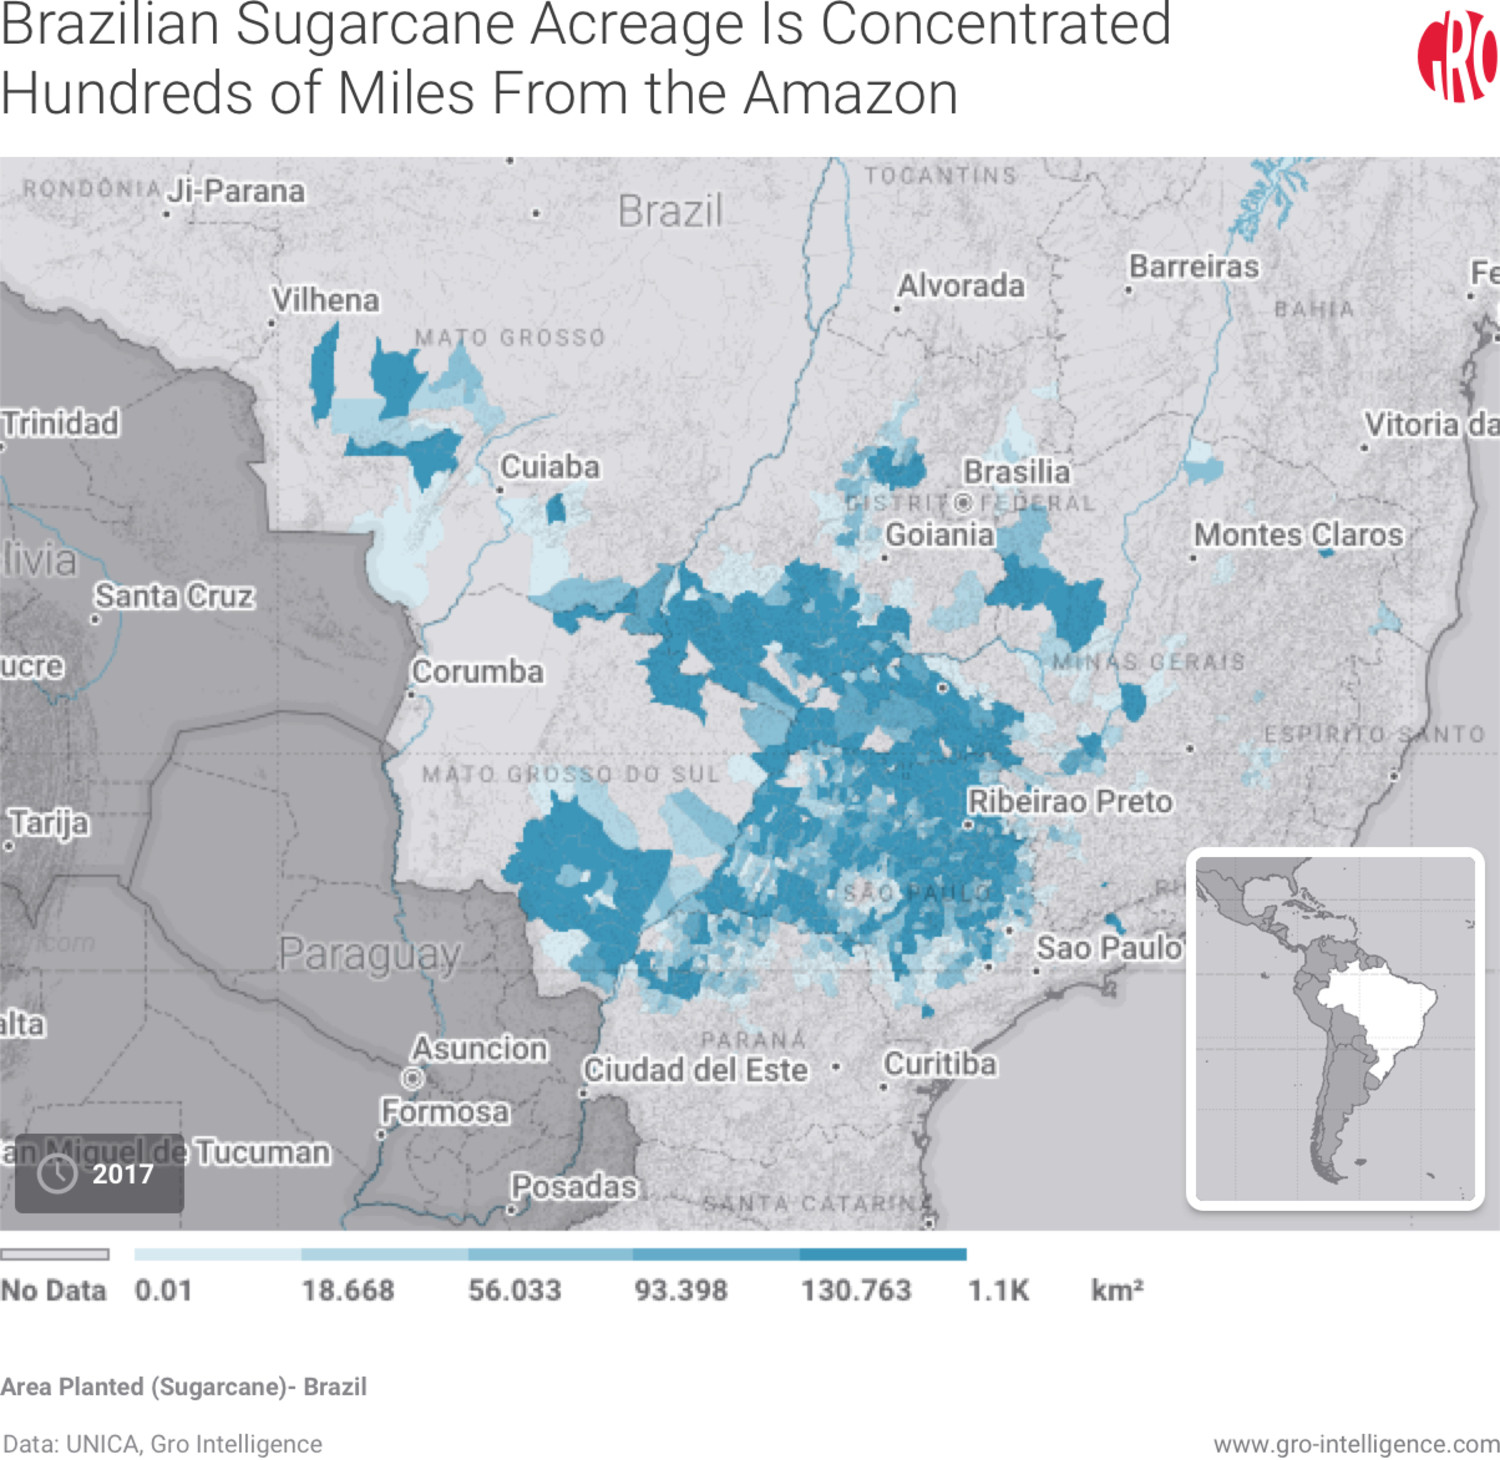 Brazilian Sugarcan Acreage Is Concentrated Hundreds of Miles From the Amazon